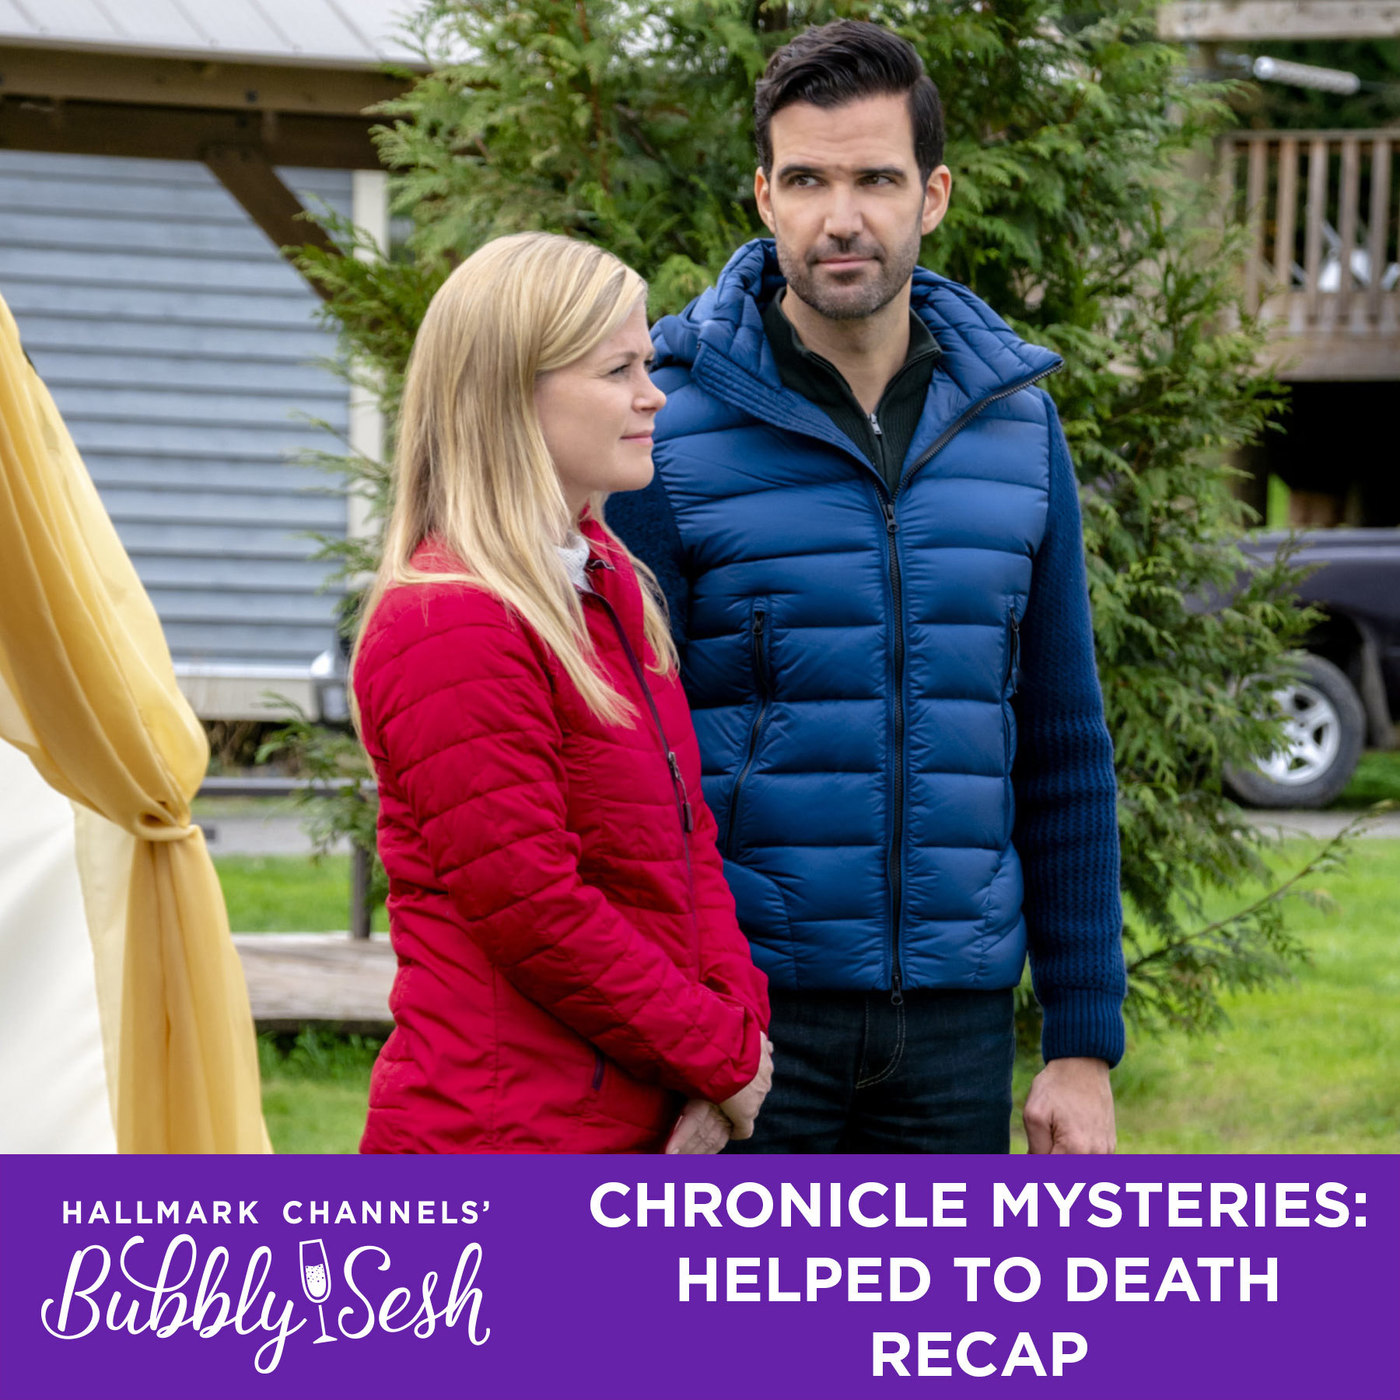 Chronicle Mysteries: Helped to Death Recap